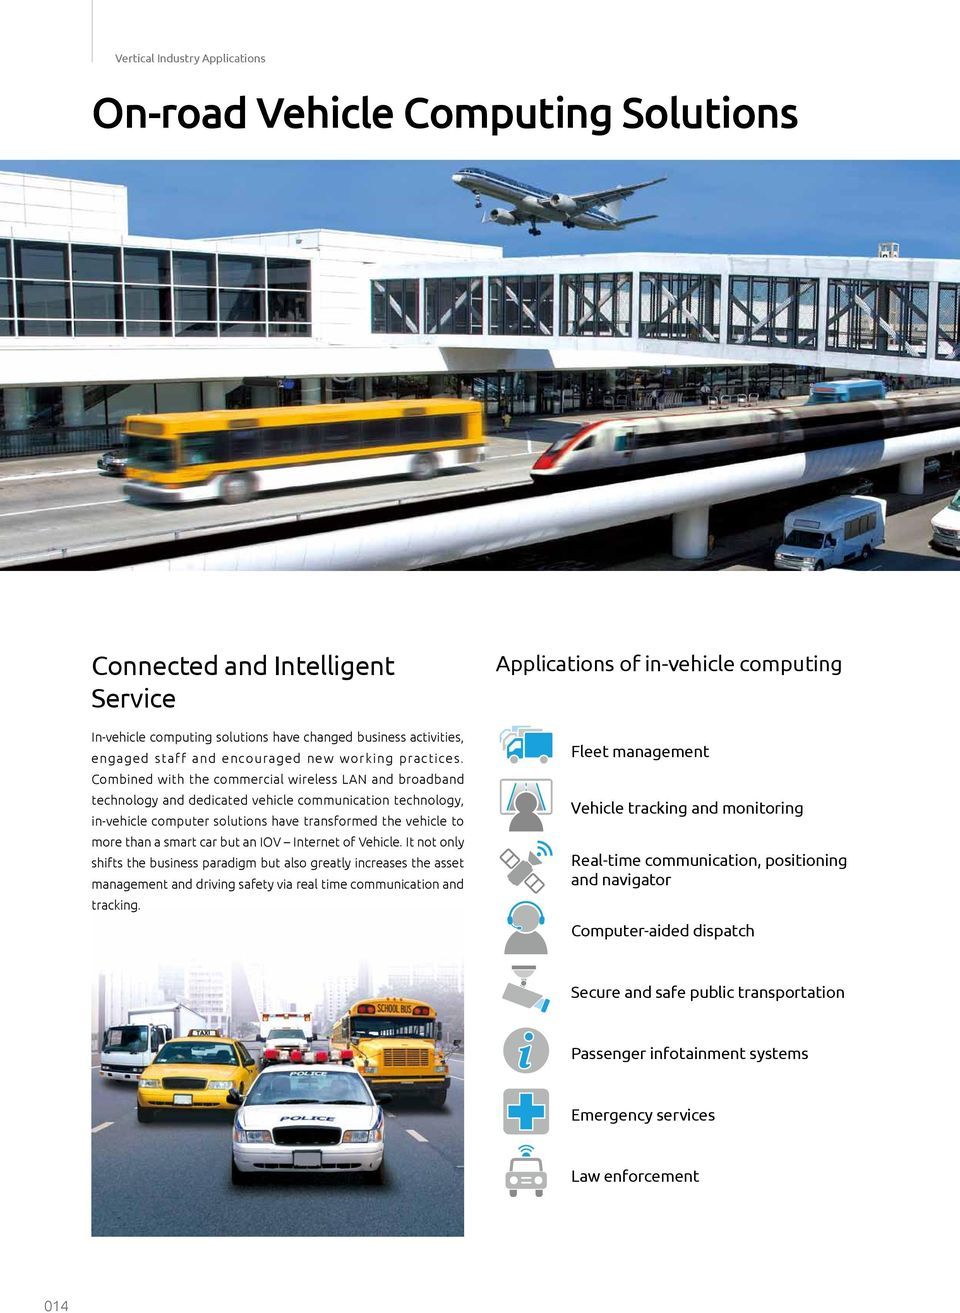 Combined with the commercial wireless LAN and broadband technology and dedicated vehicle communication technology, in-vehicle computer solutions have transformed the vehicle to more than a smart car